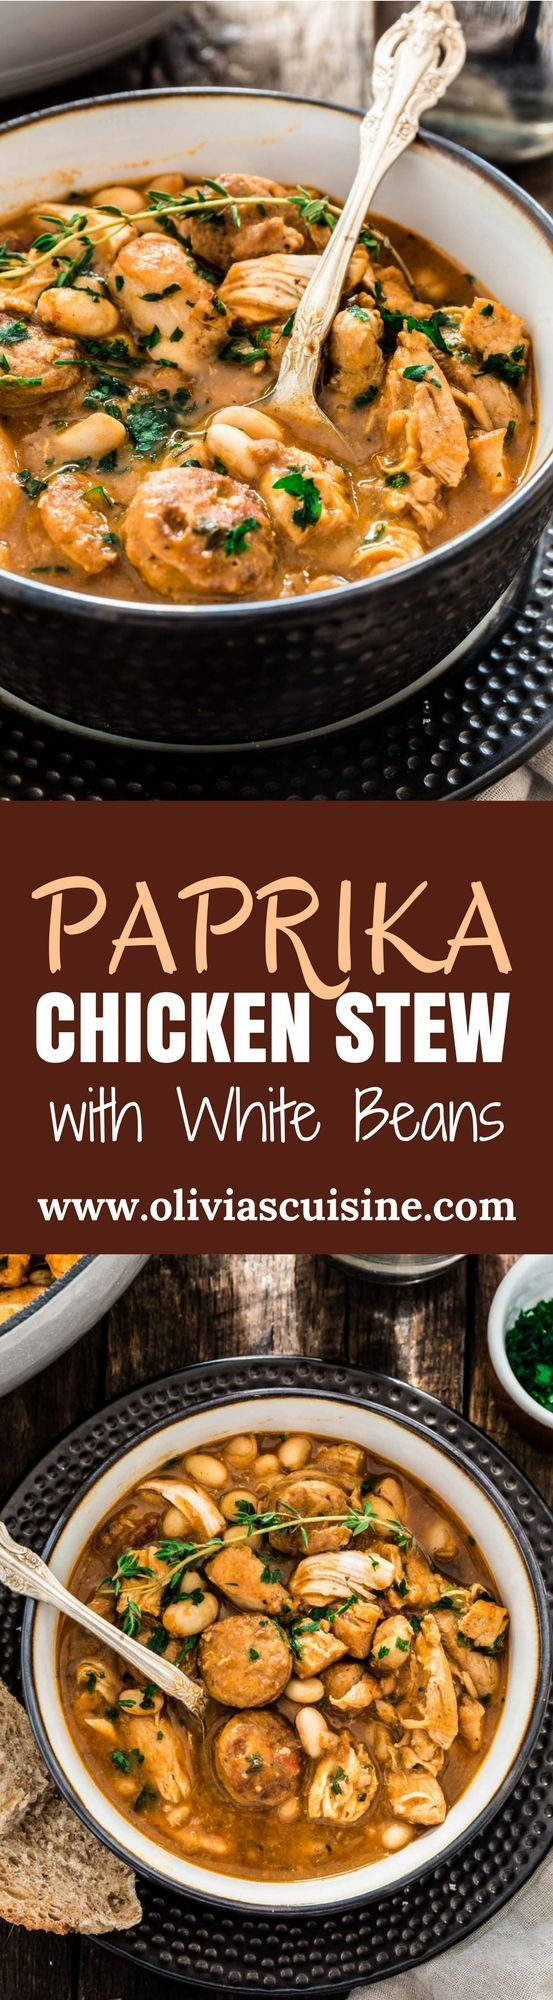 Brazilian Paprika Chicken Stew | http://www.oliviascuisine.com | A hearty and comforting Brazilian Paprika Chicken Stew is possibly one of the best ways to warm up this fall/winter. It is also very easy to make and done in one pot!